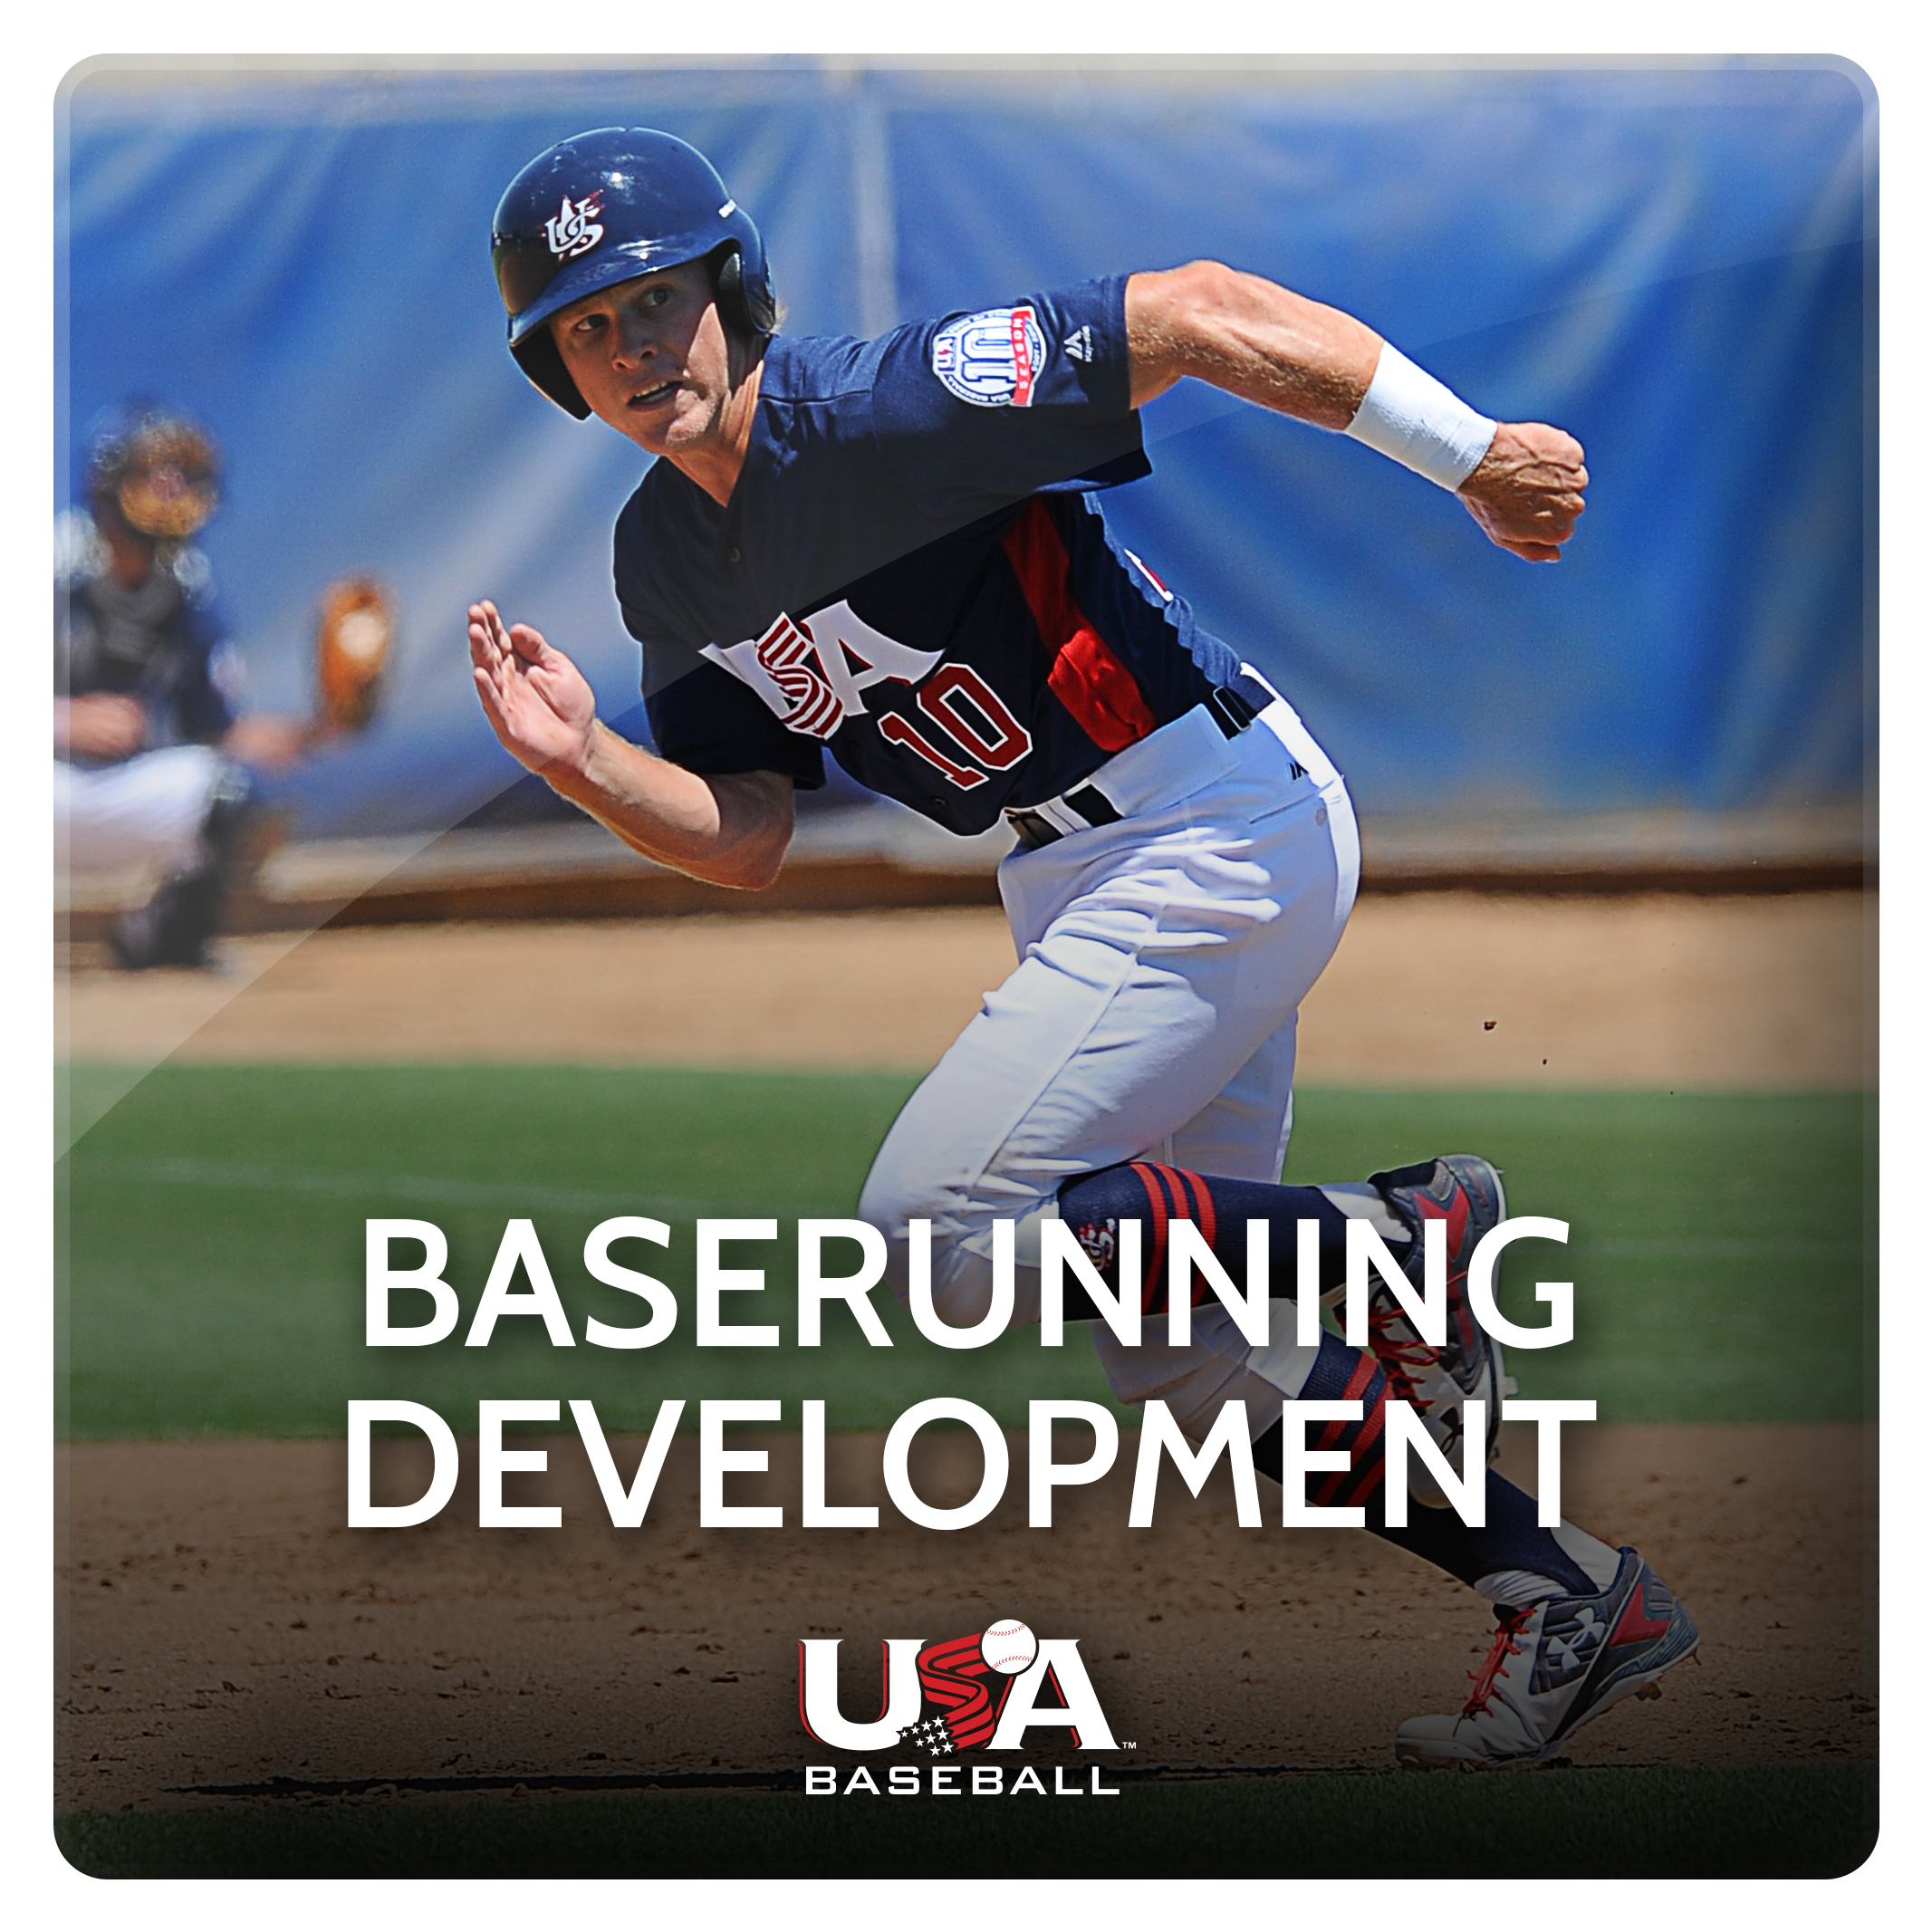 Baserunning Development